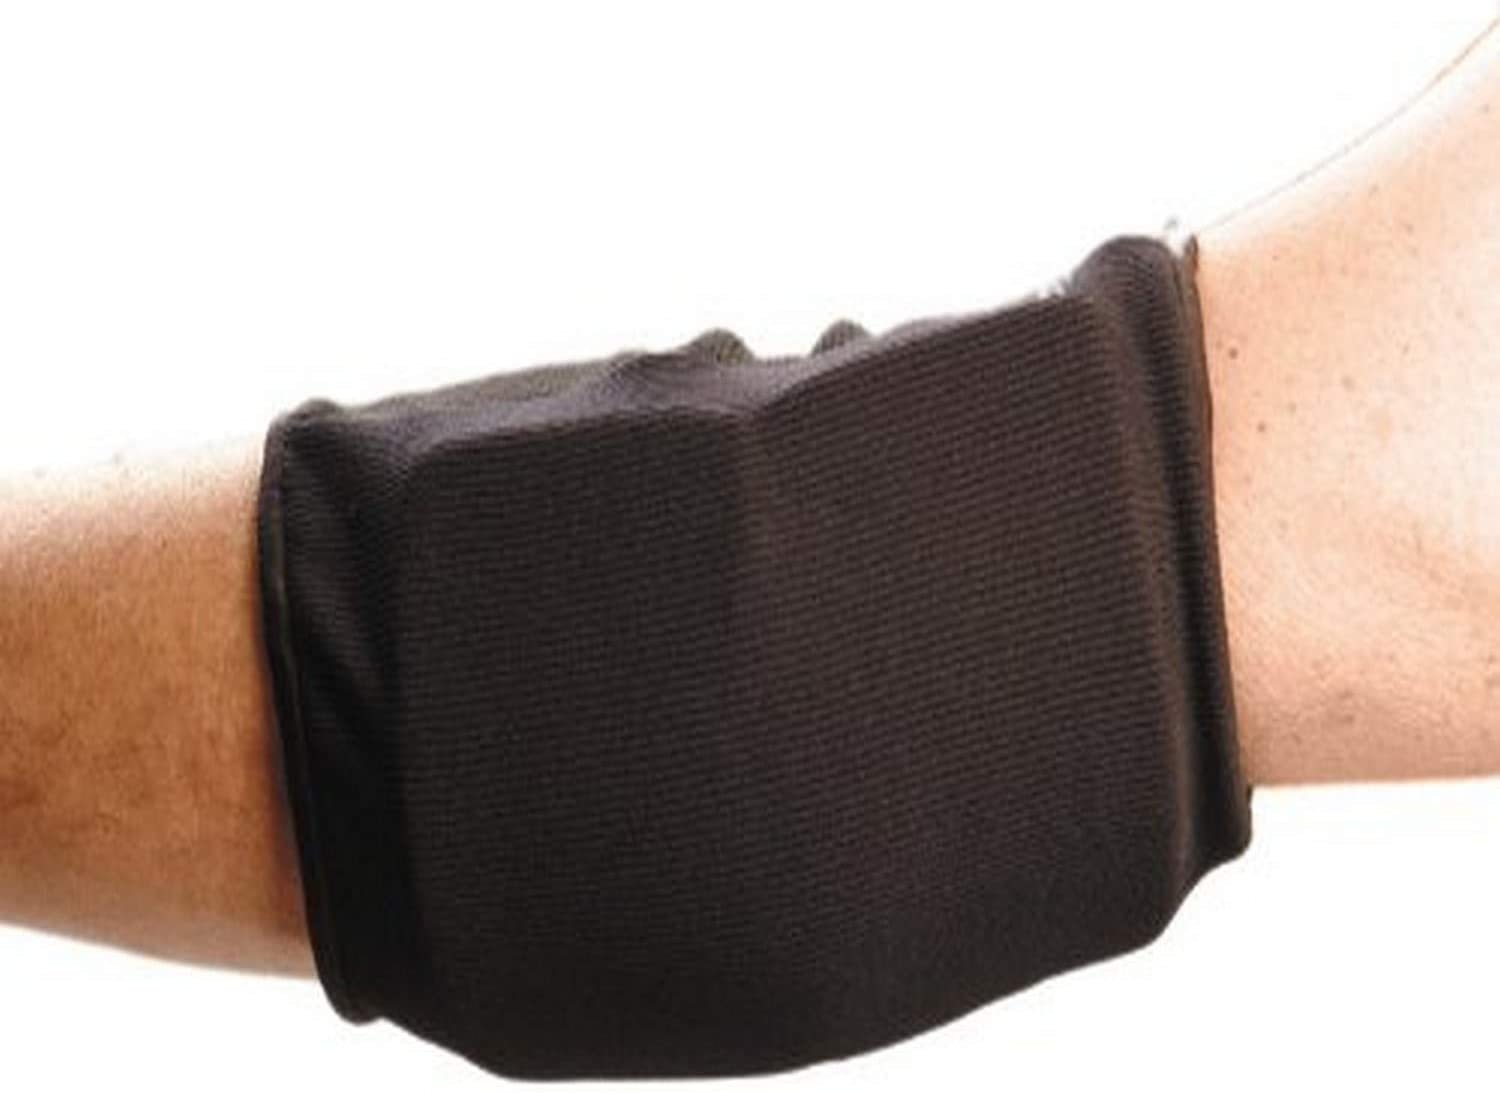 Athletic Specialties Youth Football Elbow Pad : Football Hand And Arm Pads : Sports & Outdoors